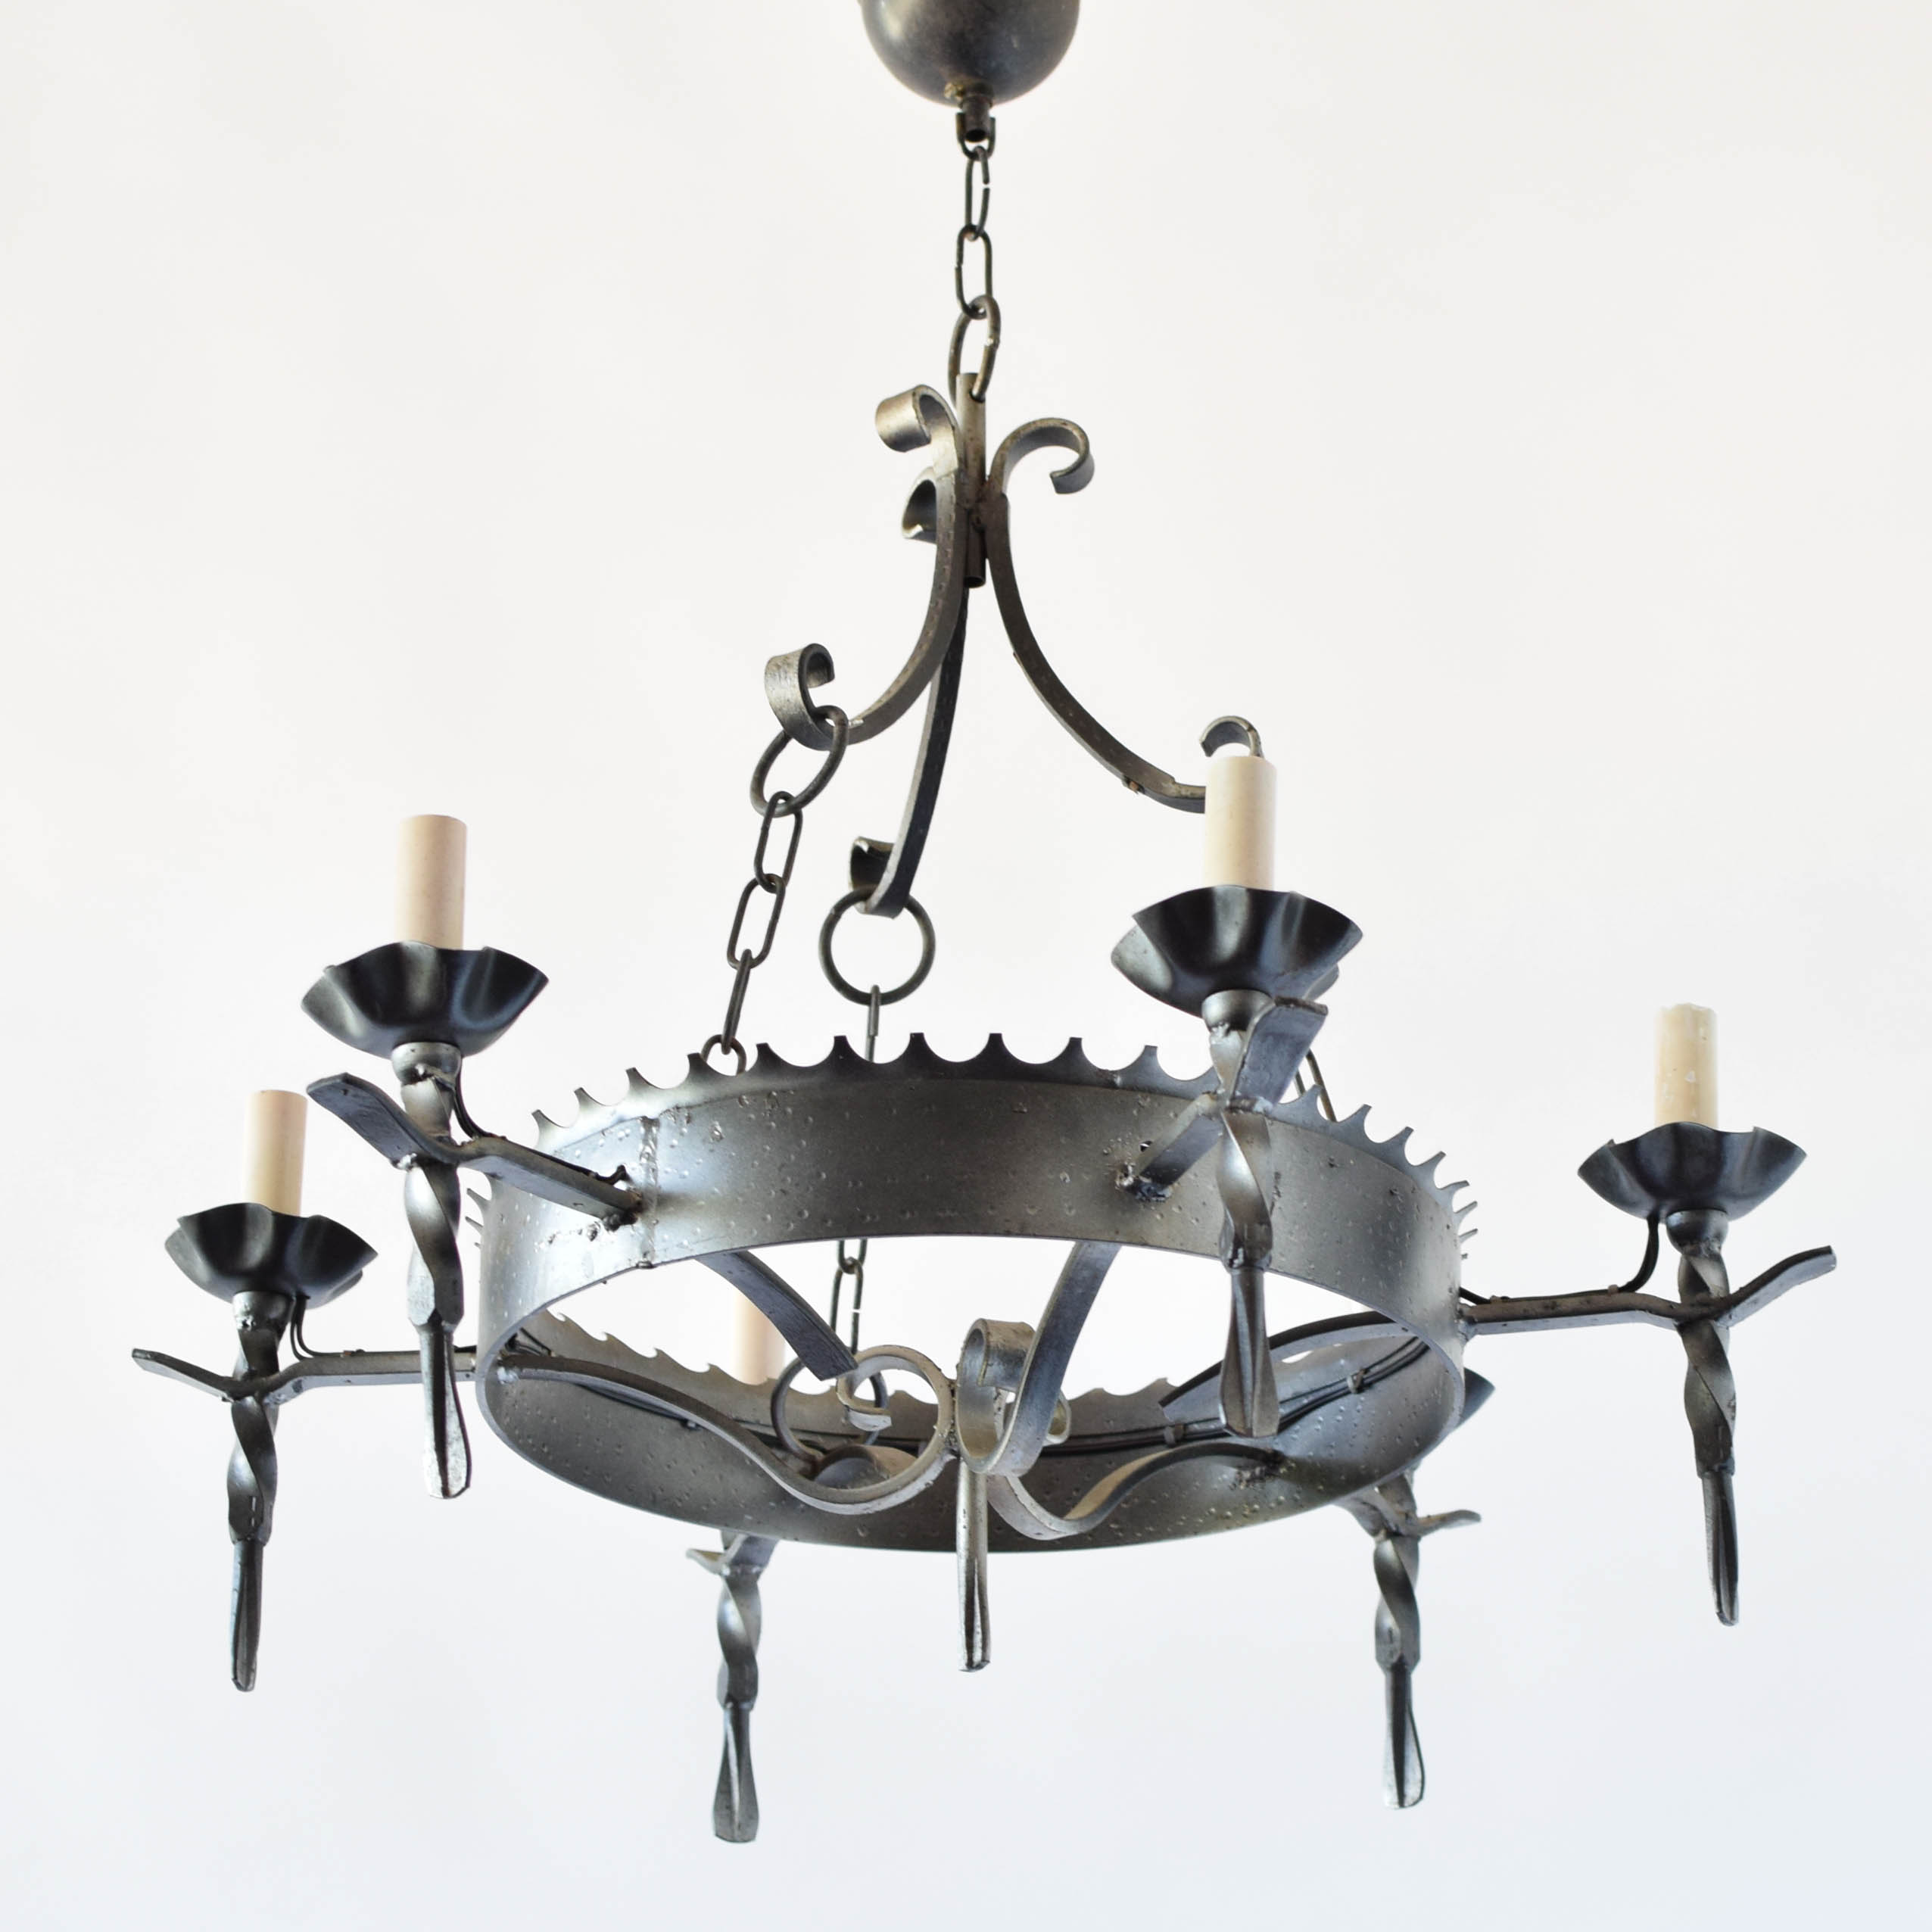 town val chandelier wikiwand old en hall fashioned